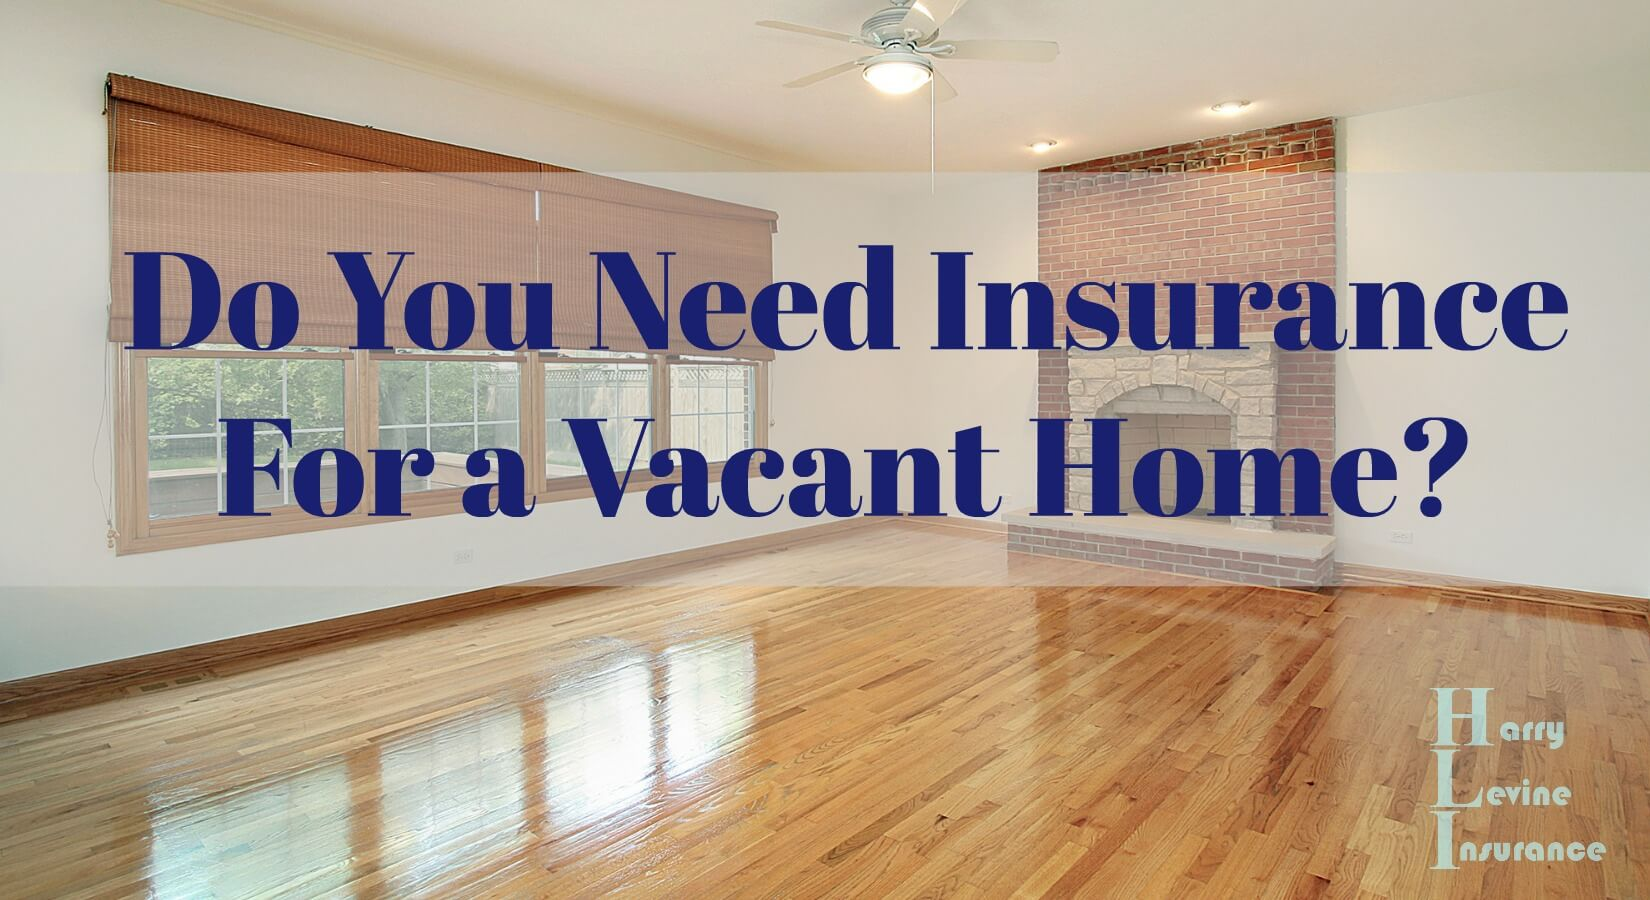 Do You Need Insurance For A Vacant Home Harry Levine Insurance